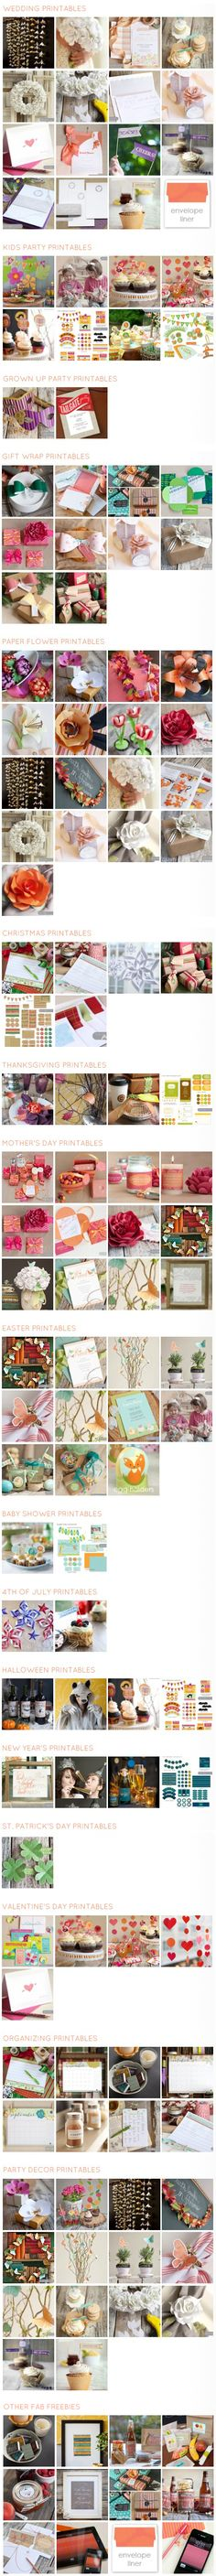 Free printables and templates galore - from Ellinée http://www.ellinee.com/blog/fabulous-freebies/